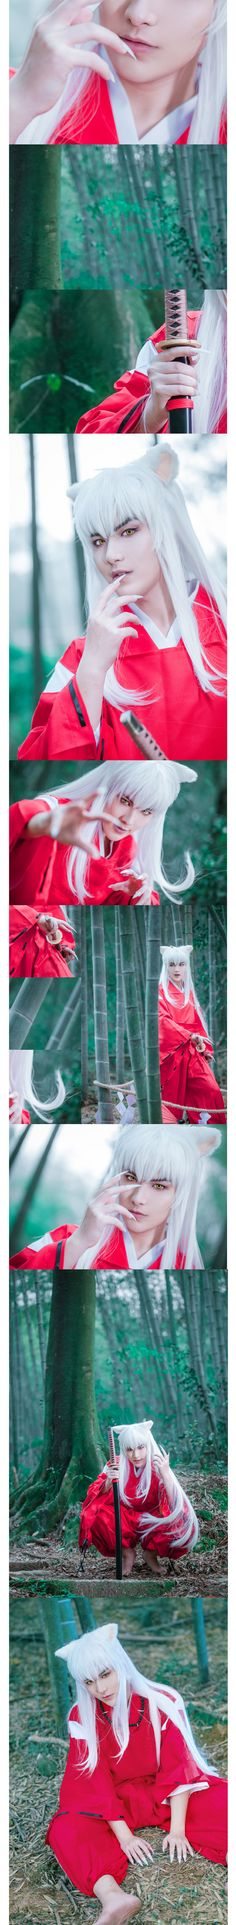 I don't appreciate the sexy Inuyasha facial expressions but the costume and makeup is AMAZING.